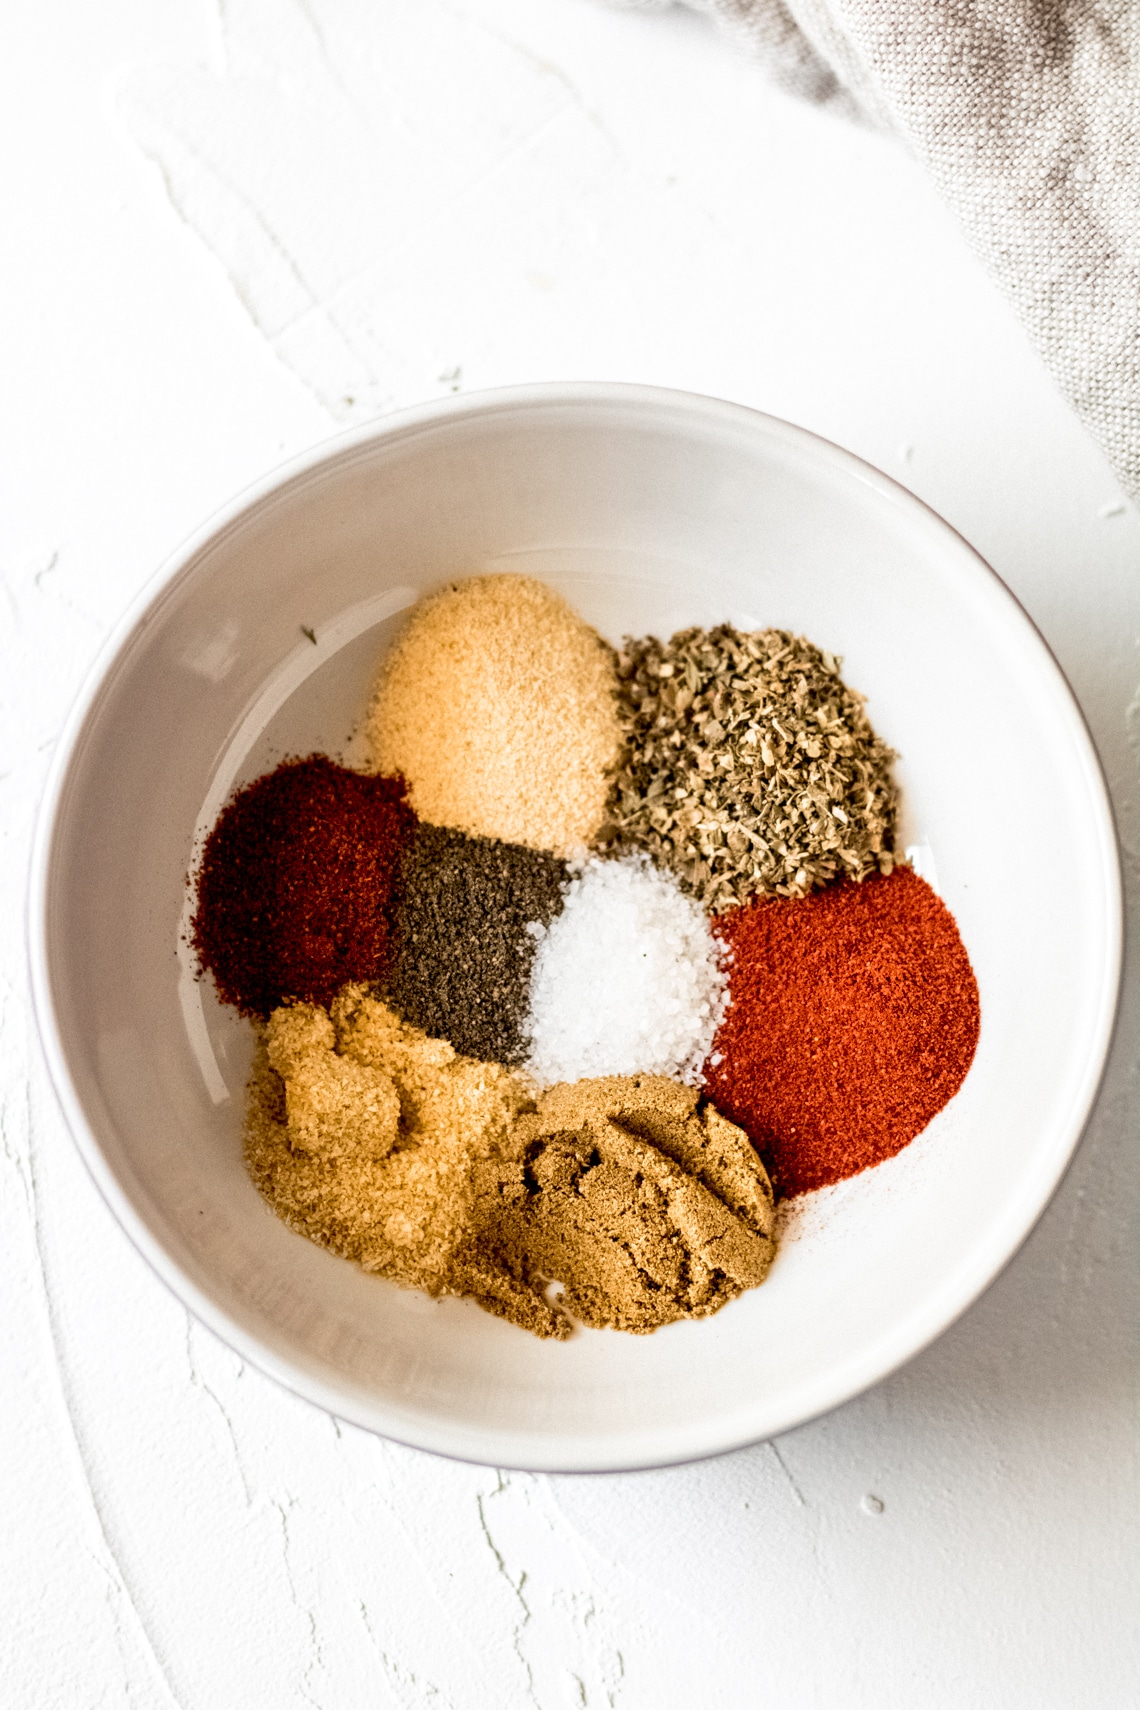 blackening spices in a white bowl